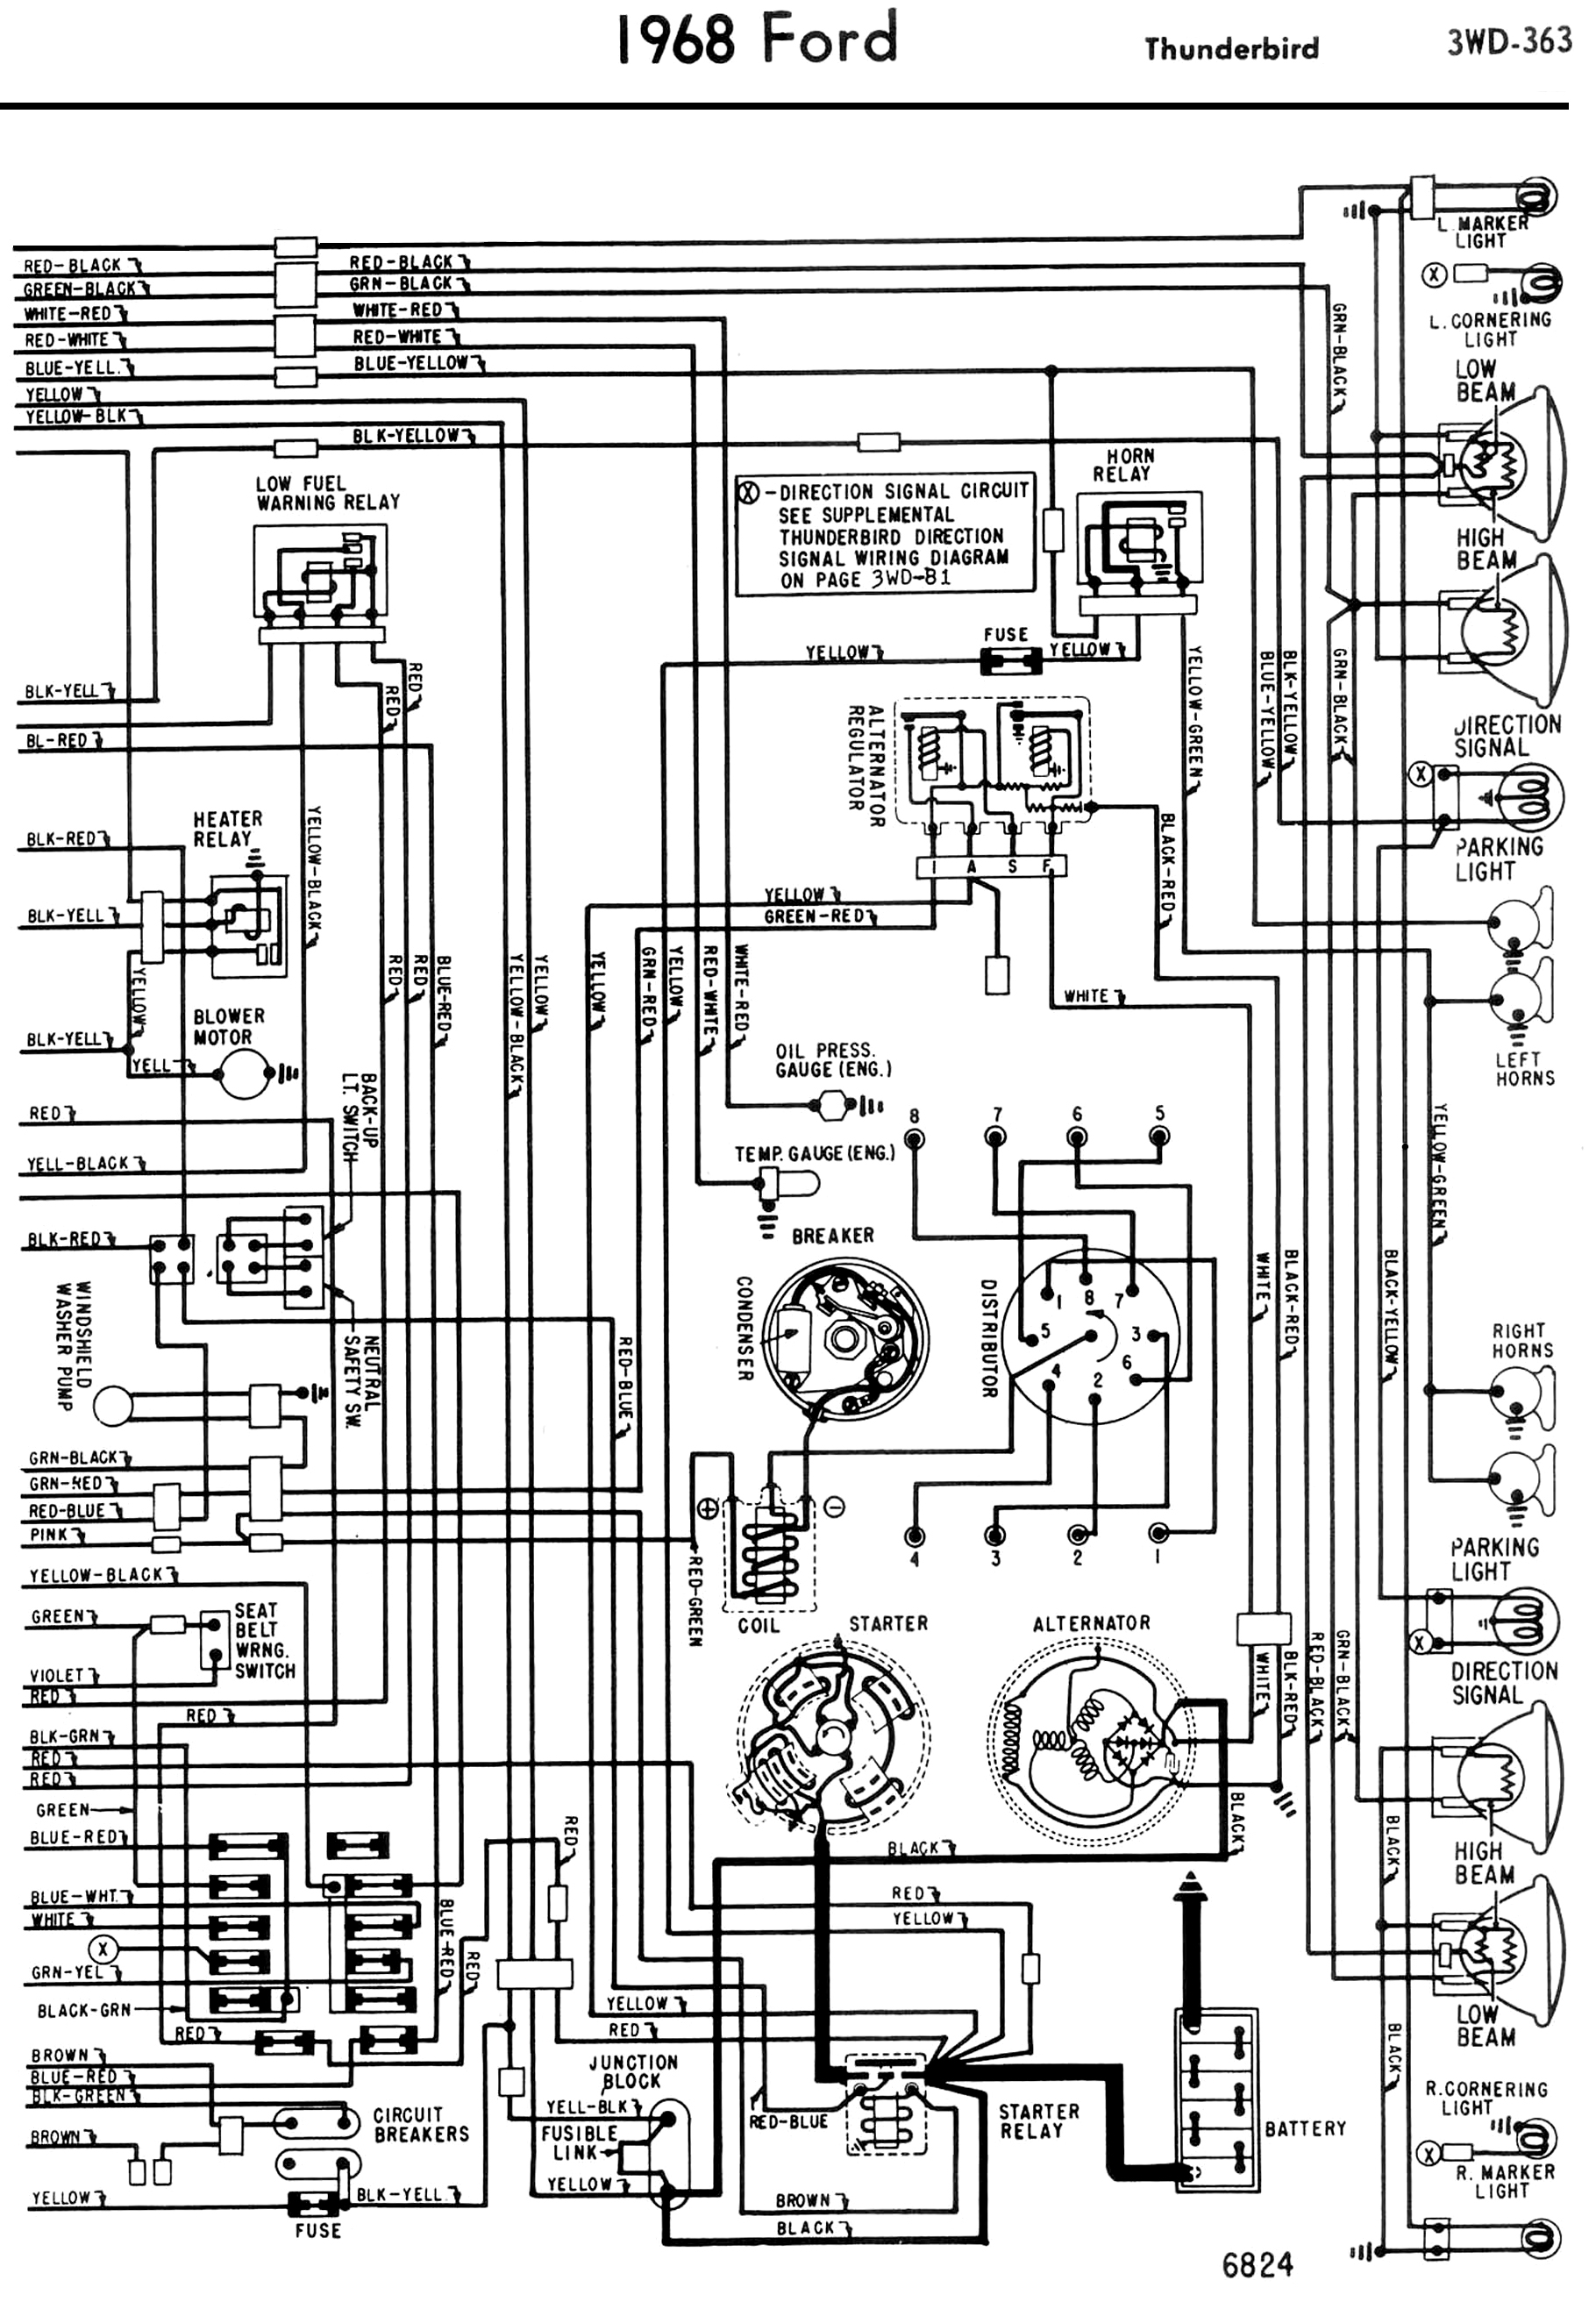 hight resolution of 1958 68 ford electrical schematics 1962 thunderbird generator light wiring diagram wiring diagram for 2003 ford